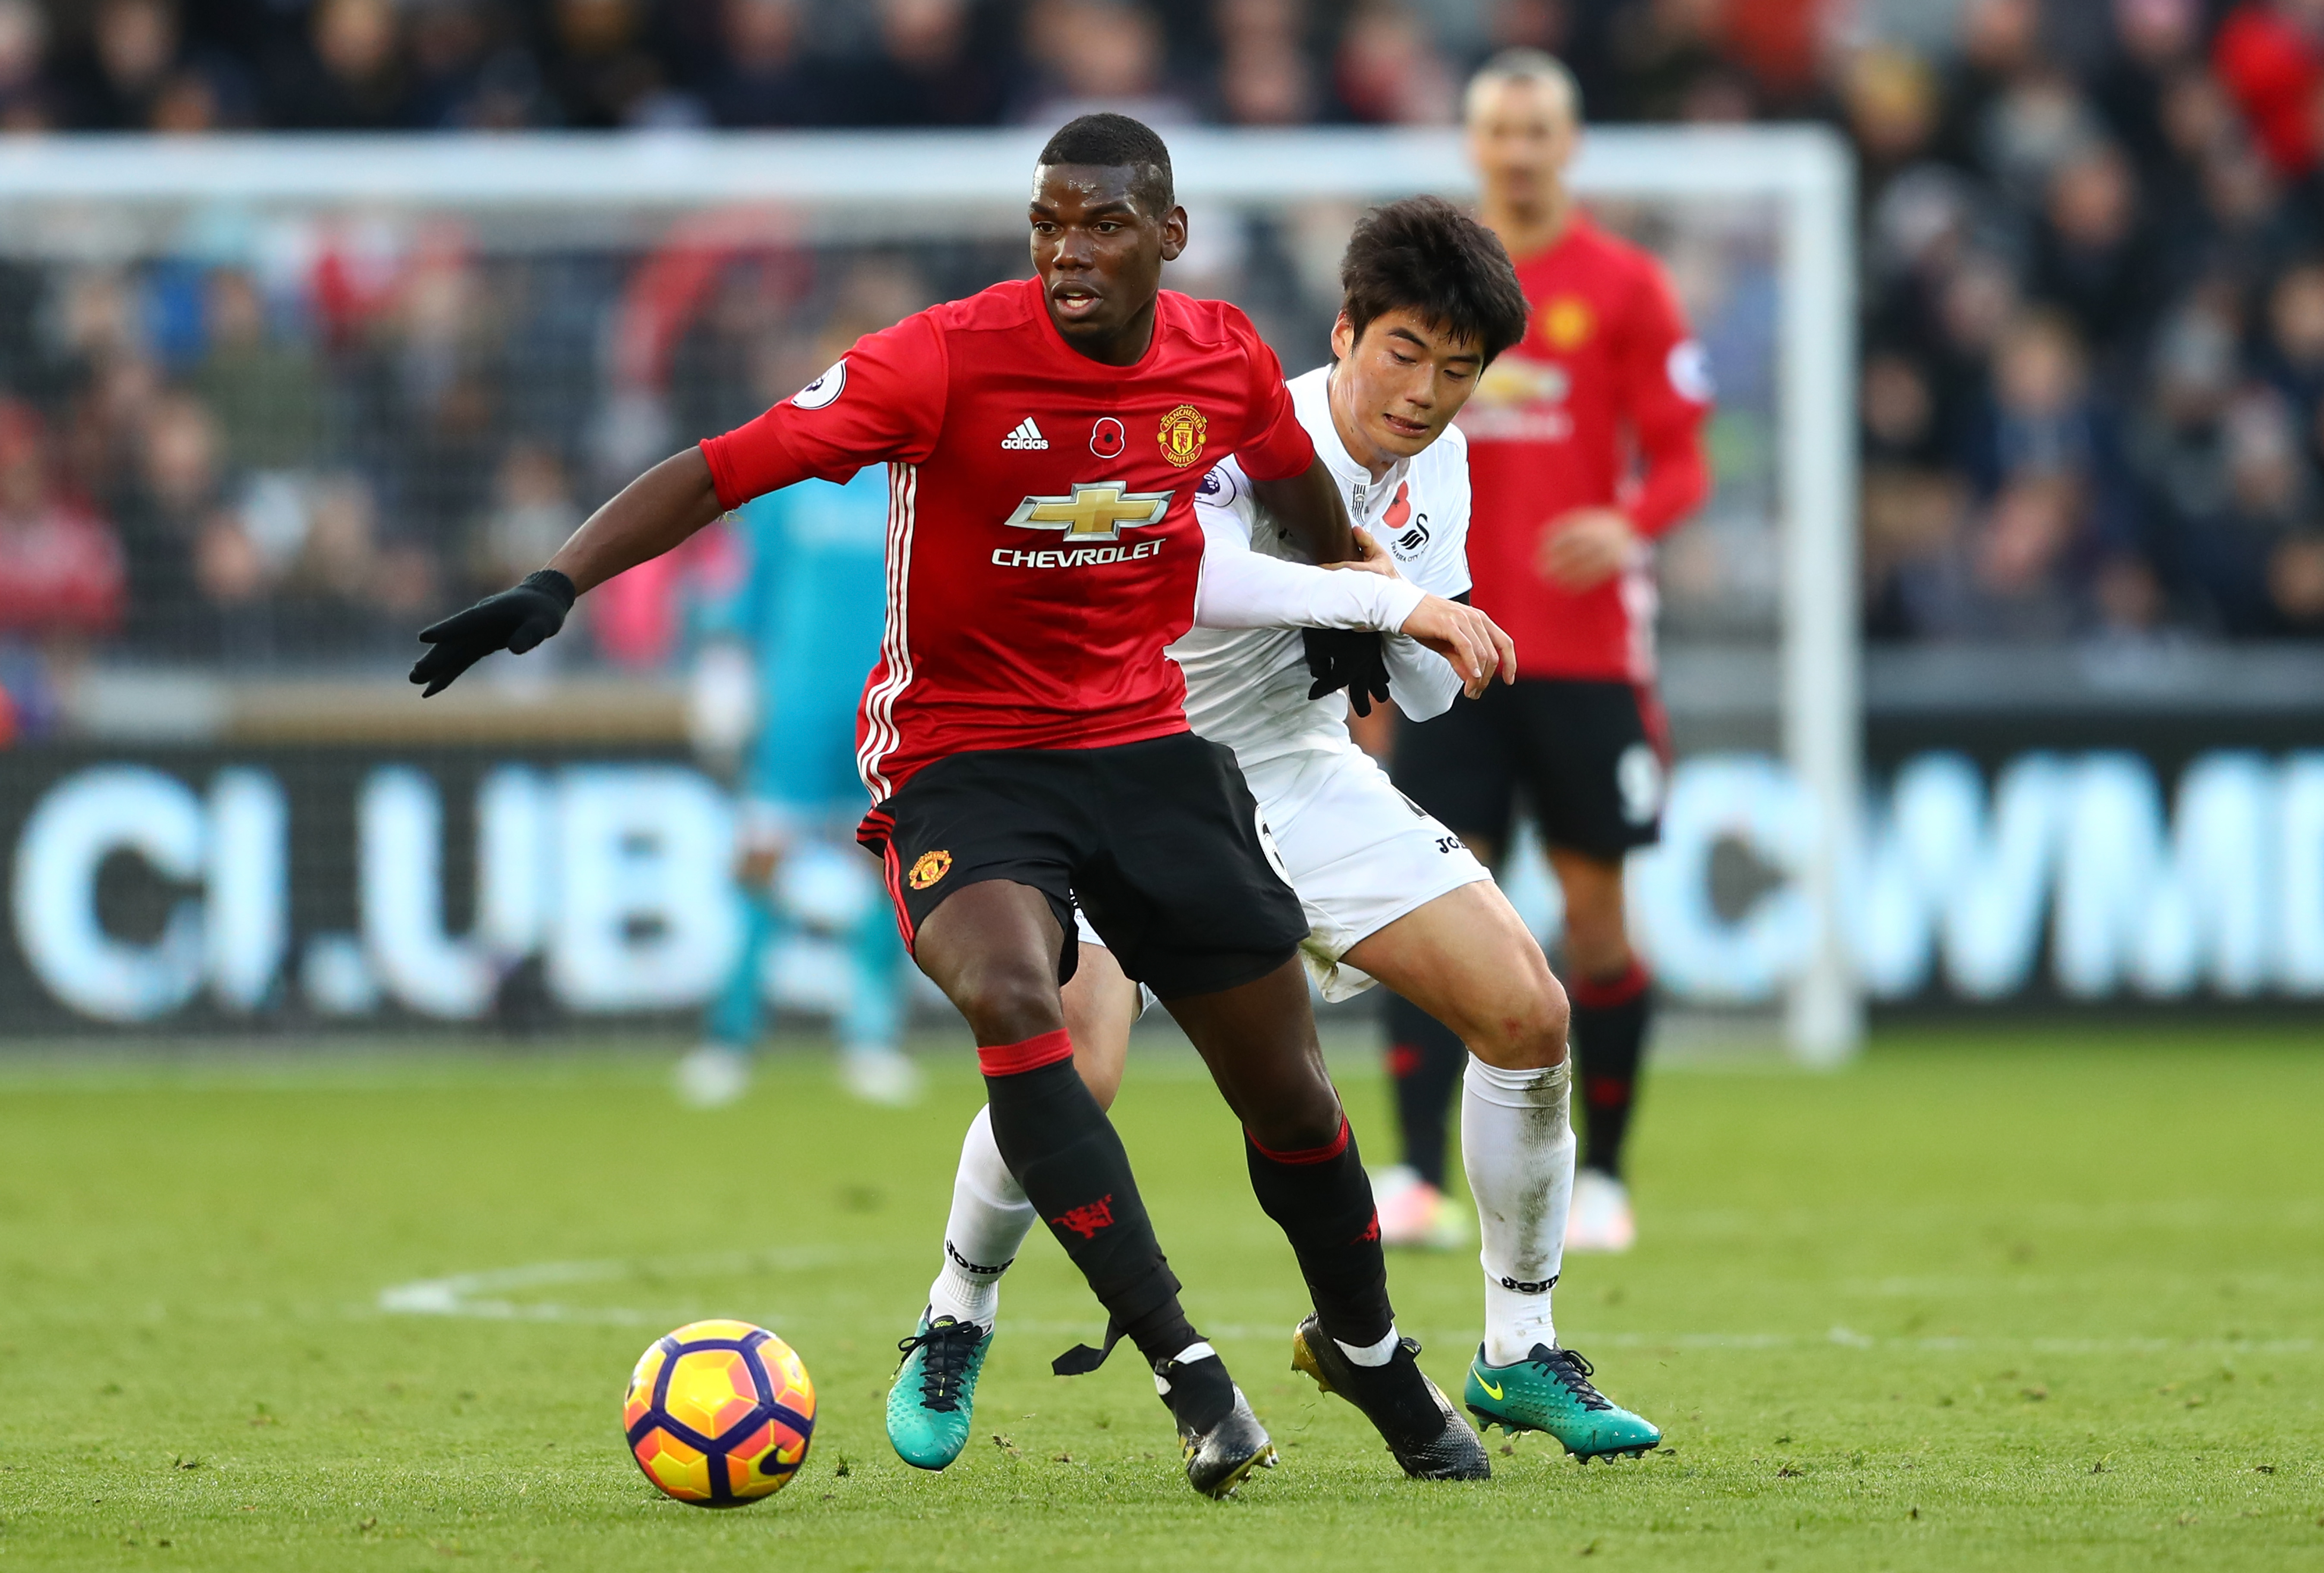 Man United-Arsenal Live Stream: How to Watch Online   Heavy.com